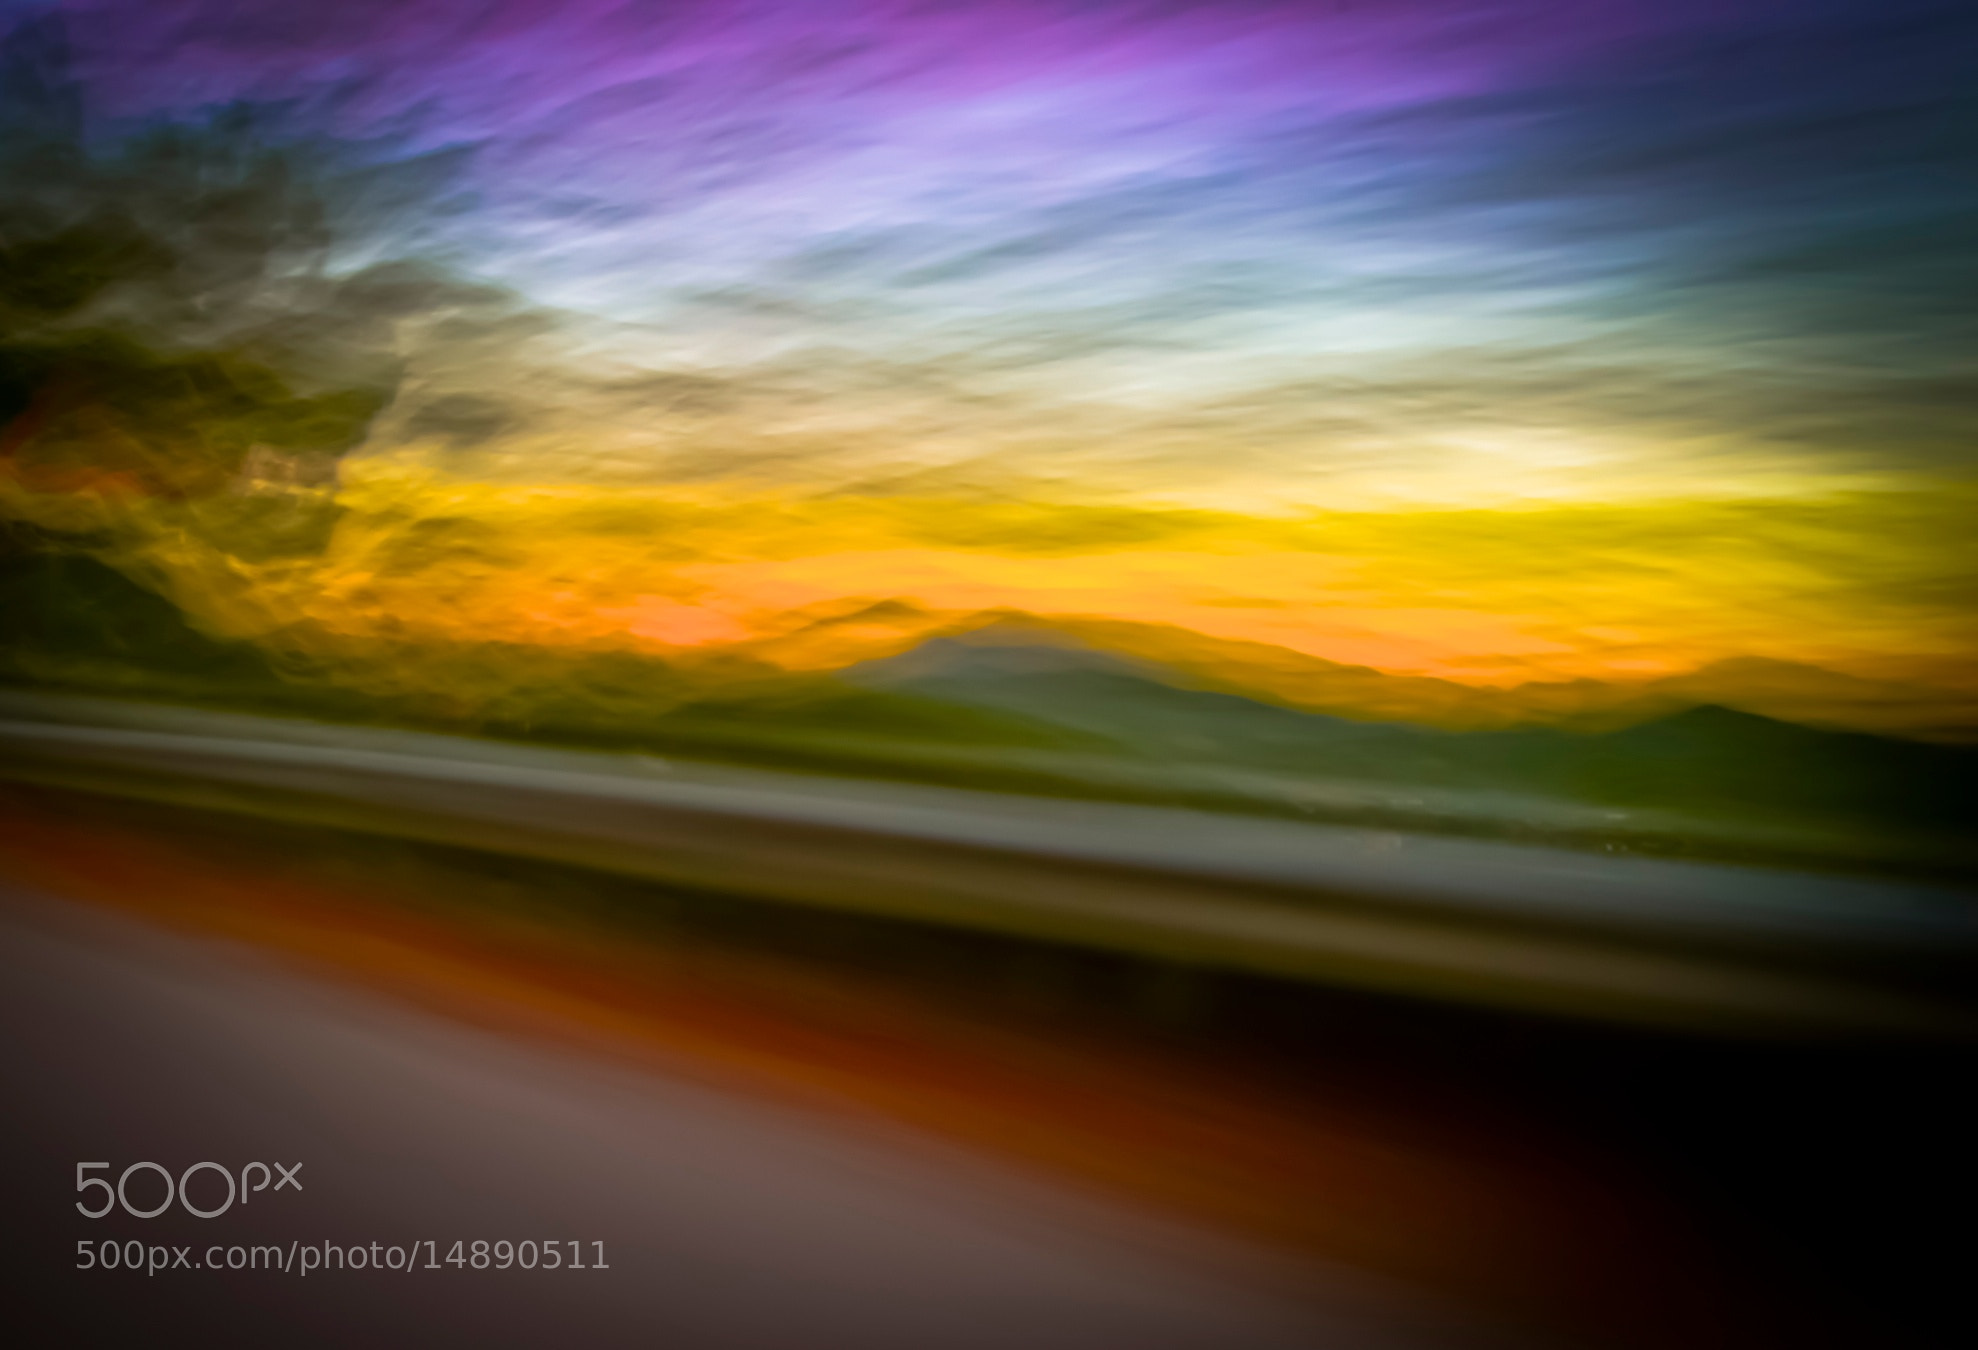 Photograph Mountain sunset from a moving car by Rosario Manzo on 500px